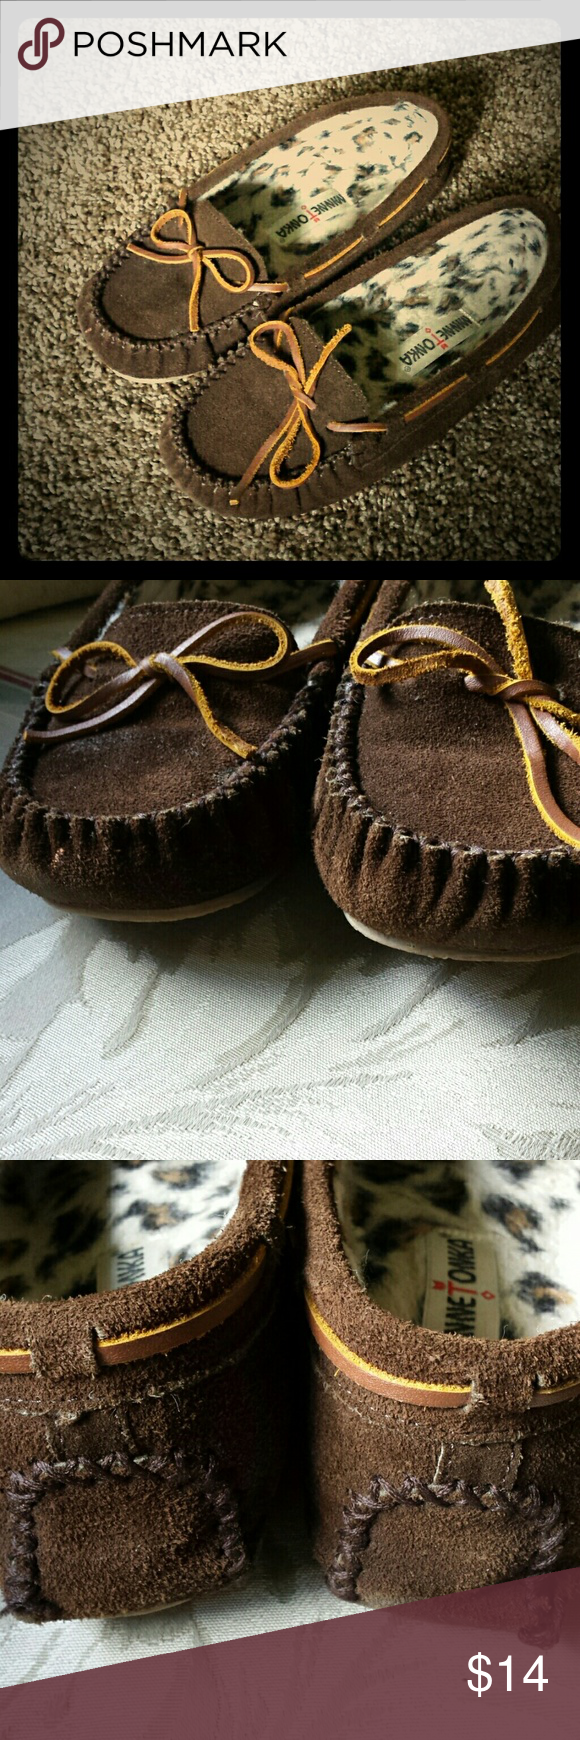 Minnetonka Suede Moccasins Real suede and faux fur inner lining. Keeps your feet cozy and warm. A few signs of wear as shown in pictures but not noticeable. Lightly cushioned sole and and soft materials make these like wearing slippers. Minnetonka Shoes Flats & Loafers